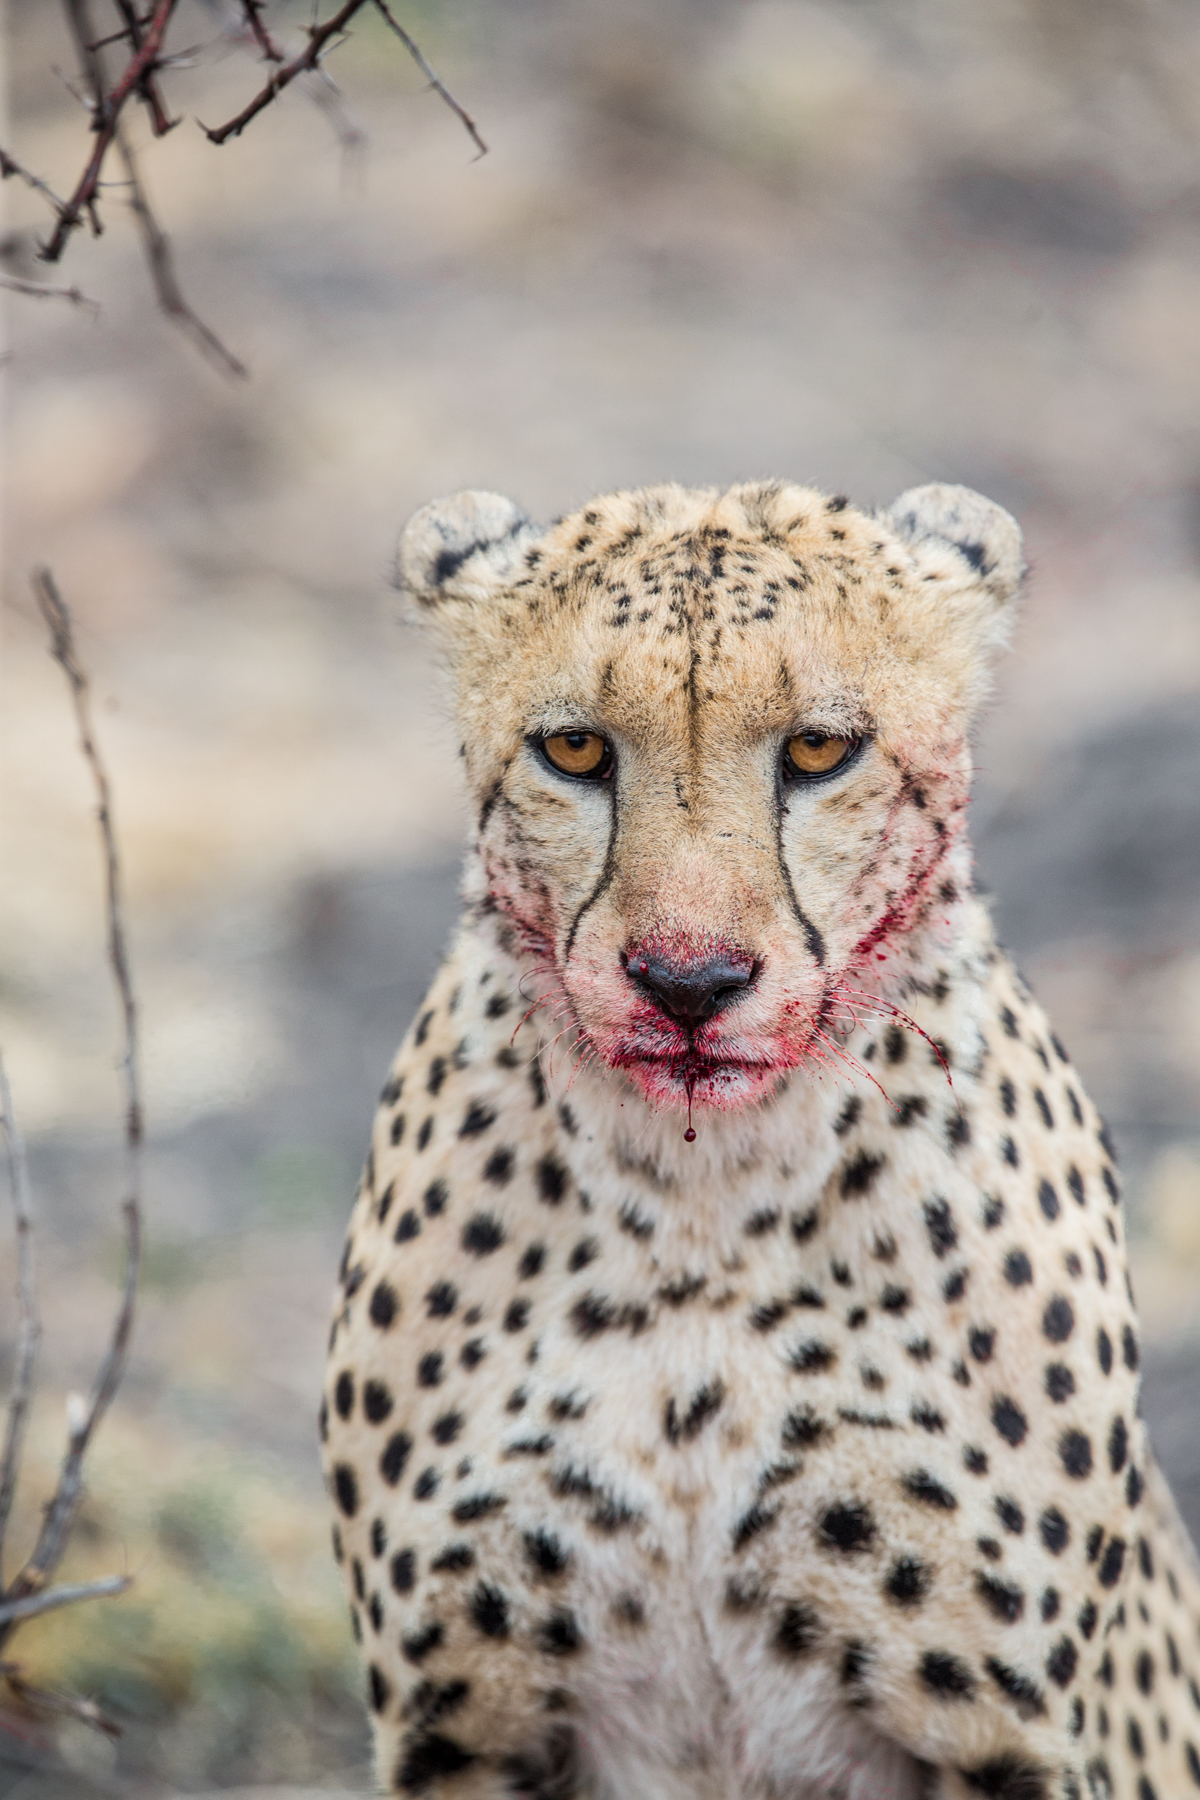 I shot this in the middle of breakfast in South Africa on Safari.